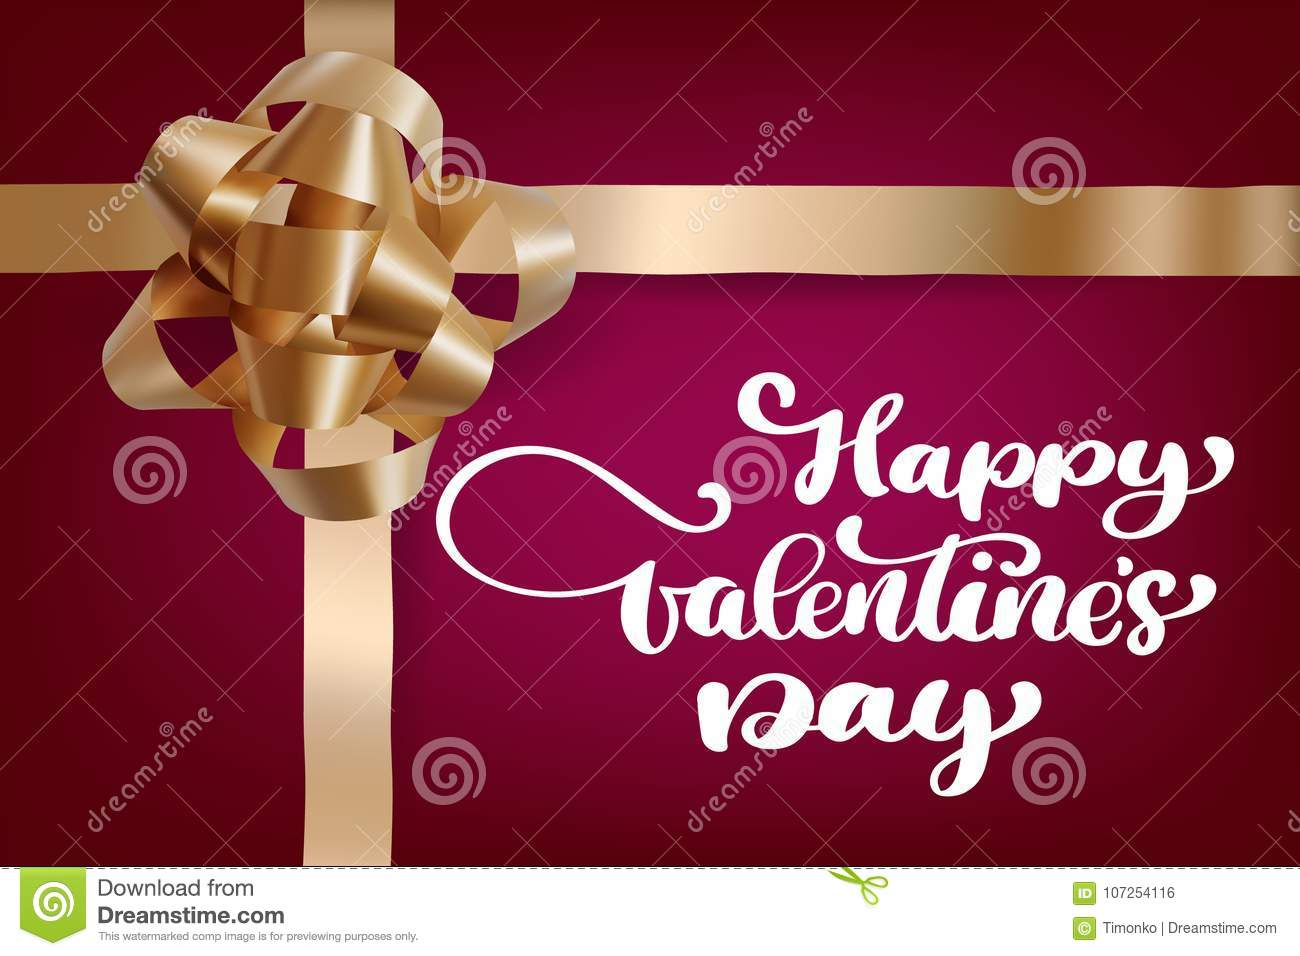 Happy Valentines Day Romantic Greeting Card With A Realistic Gift